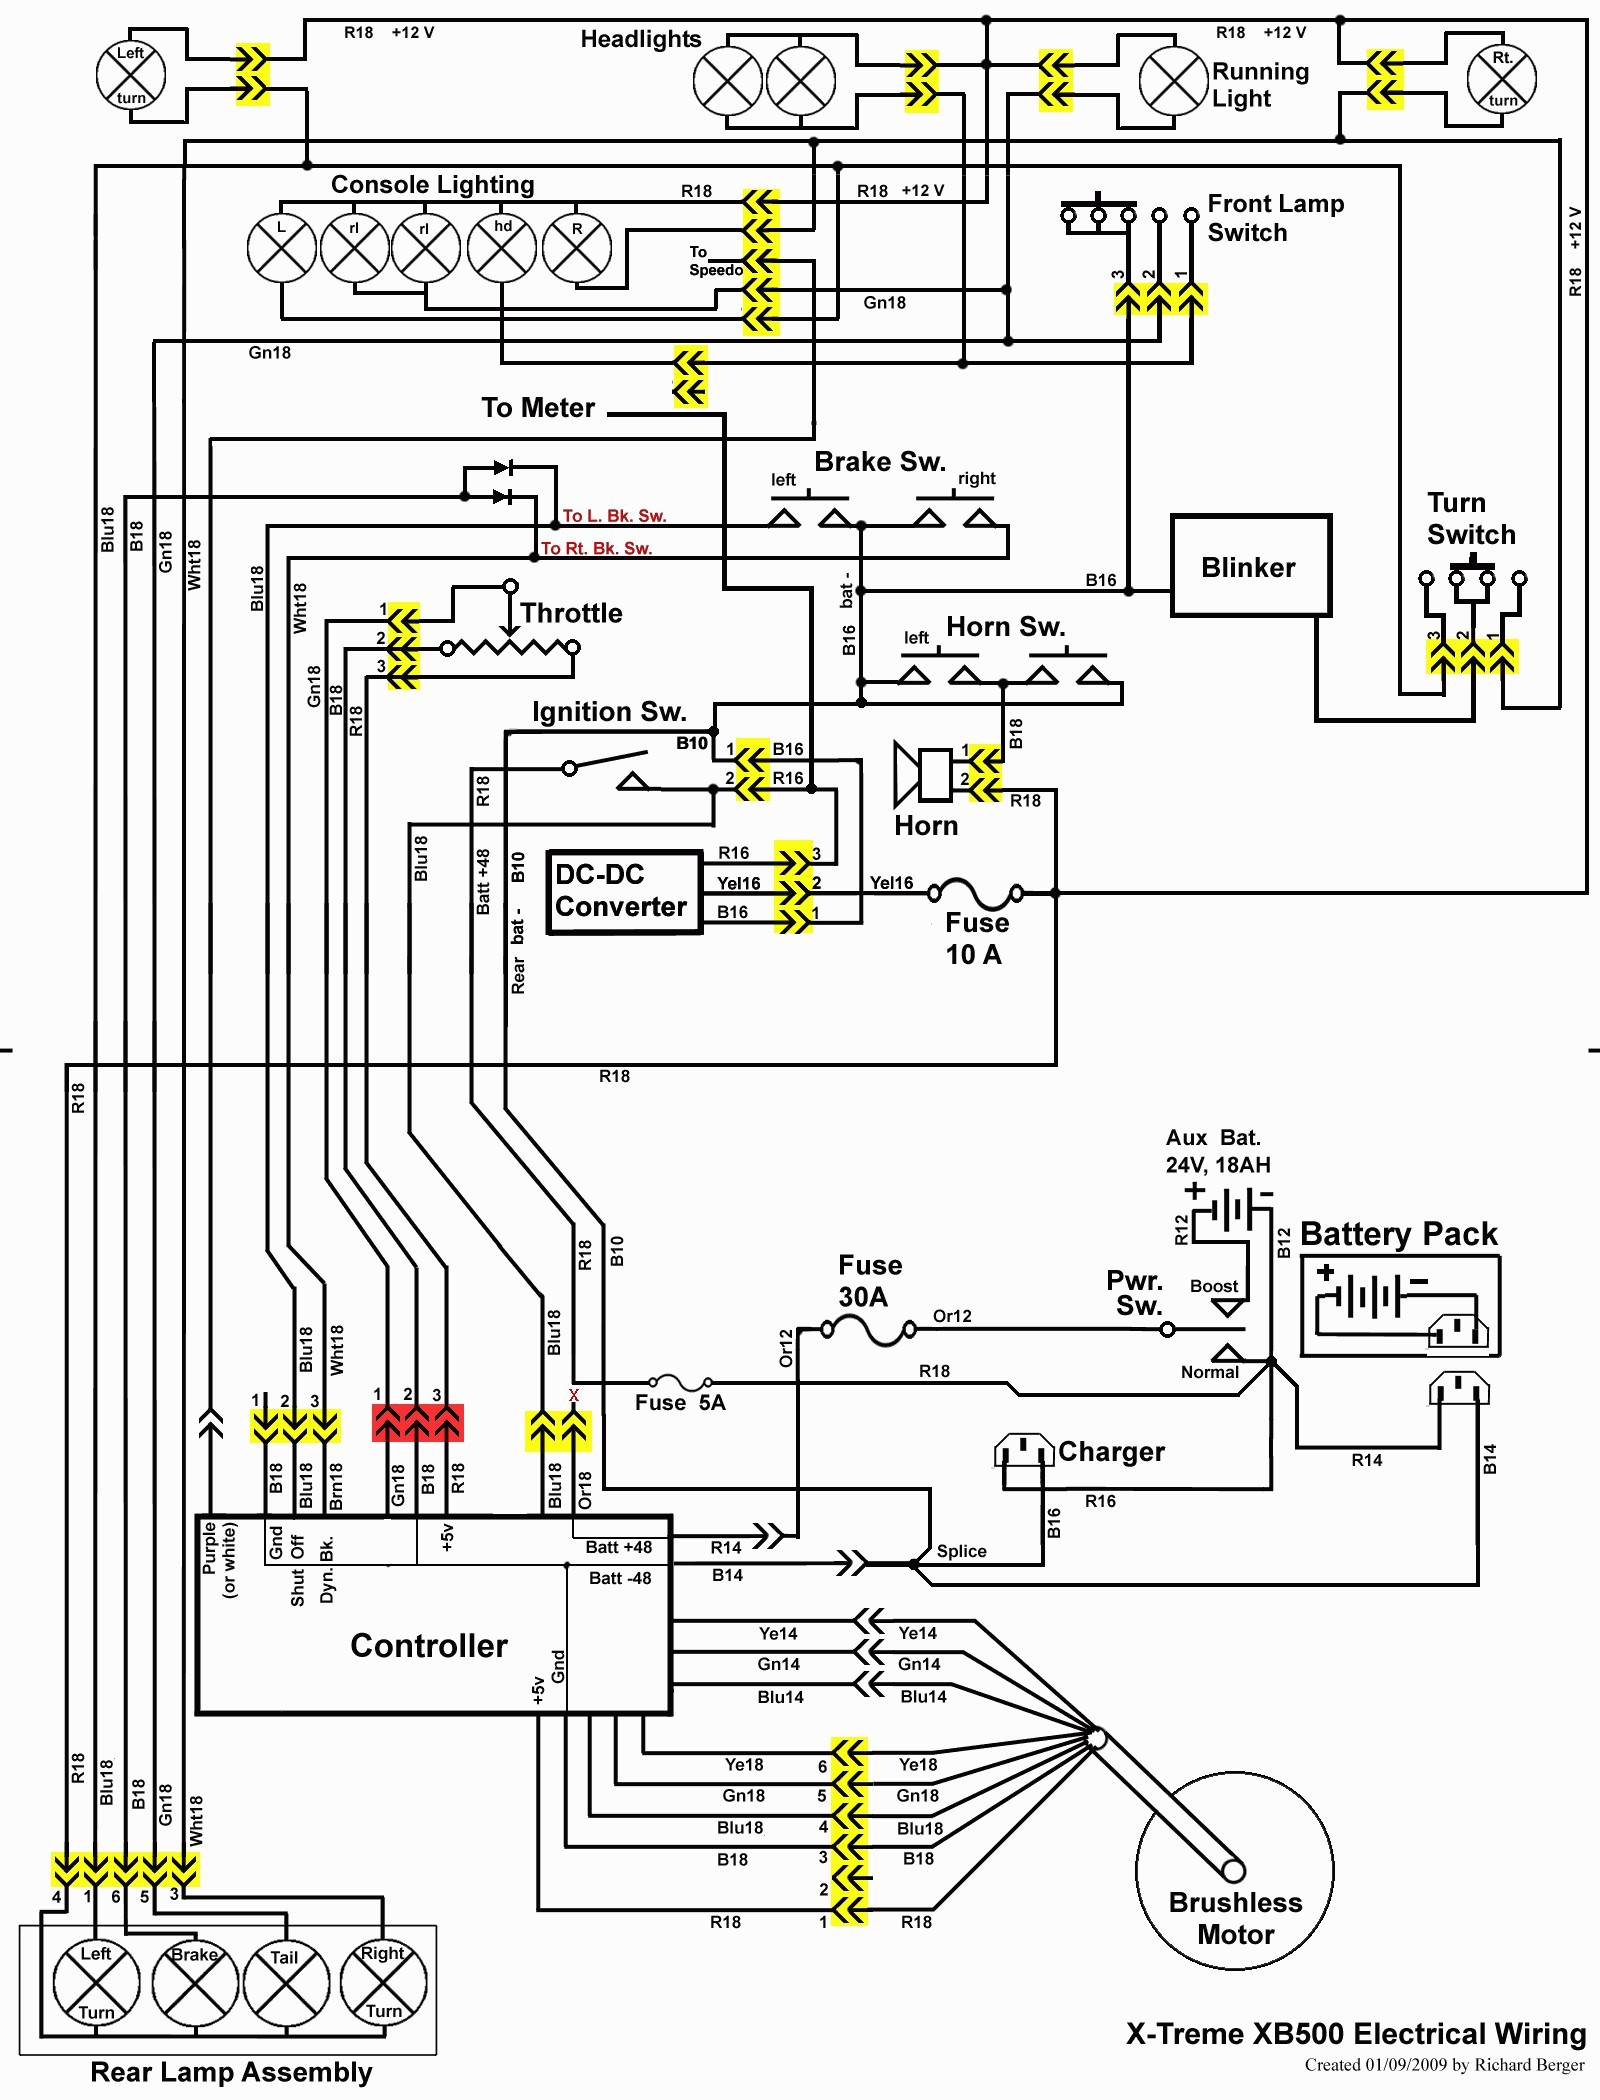 E100 Razor Scooter Wiring Diagram